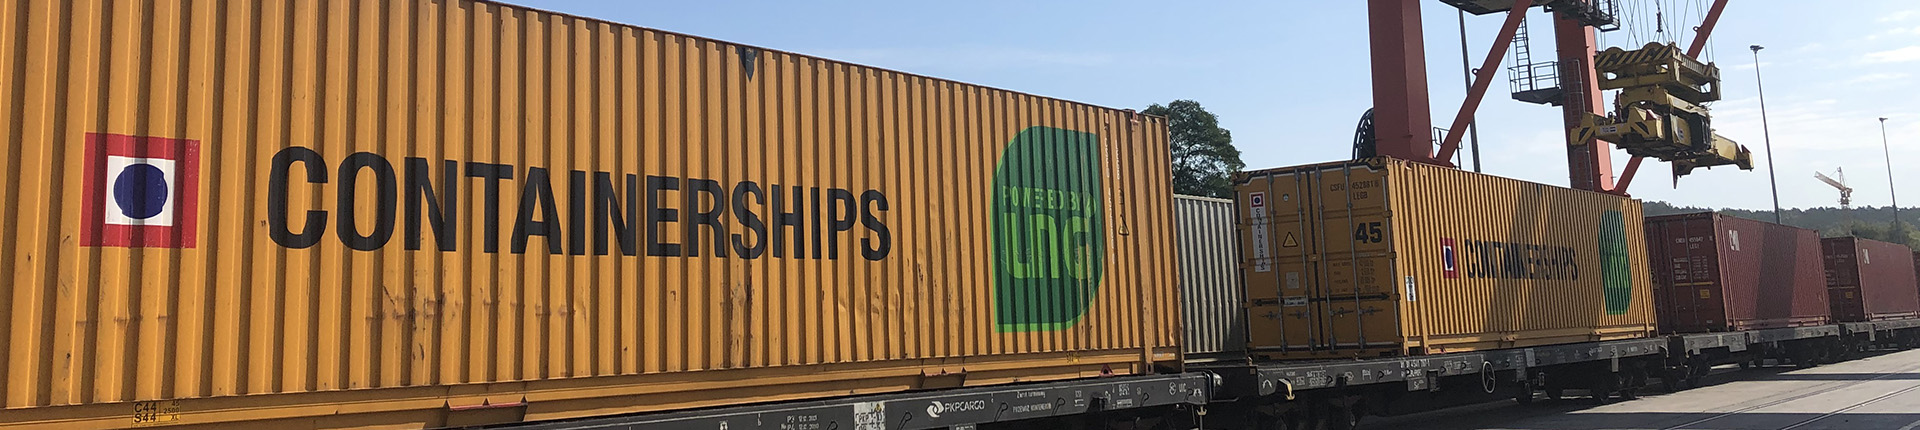 Containers on a train